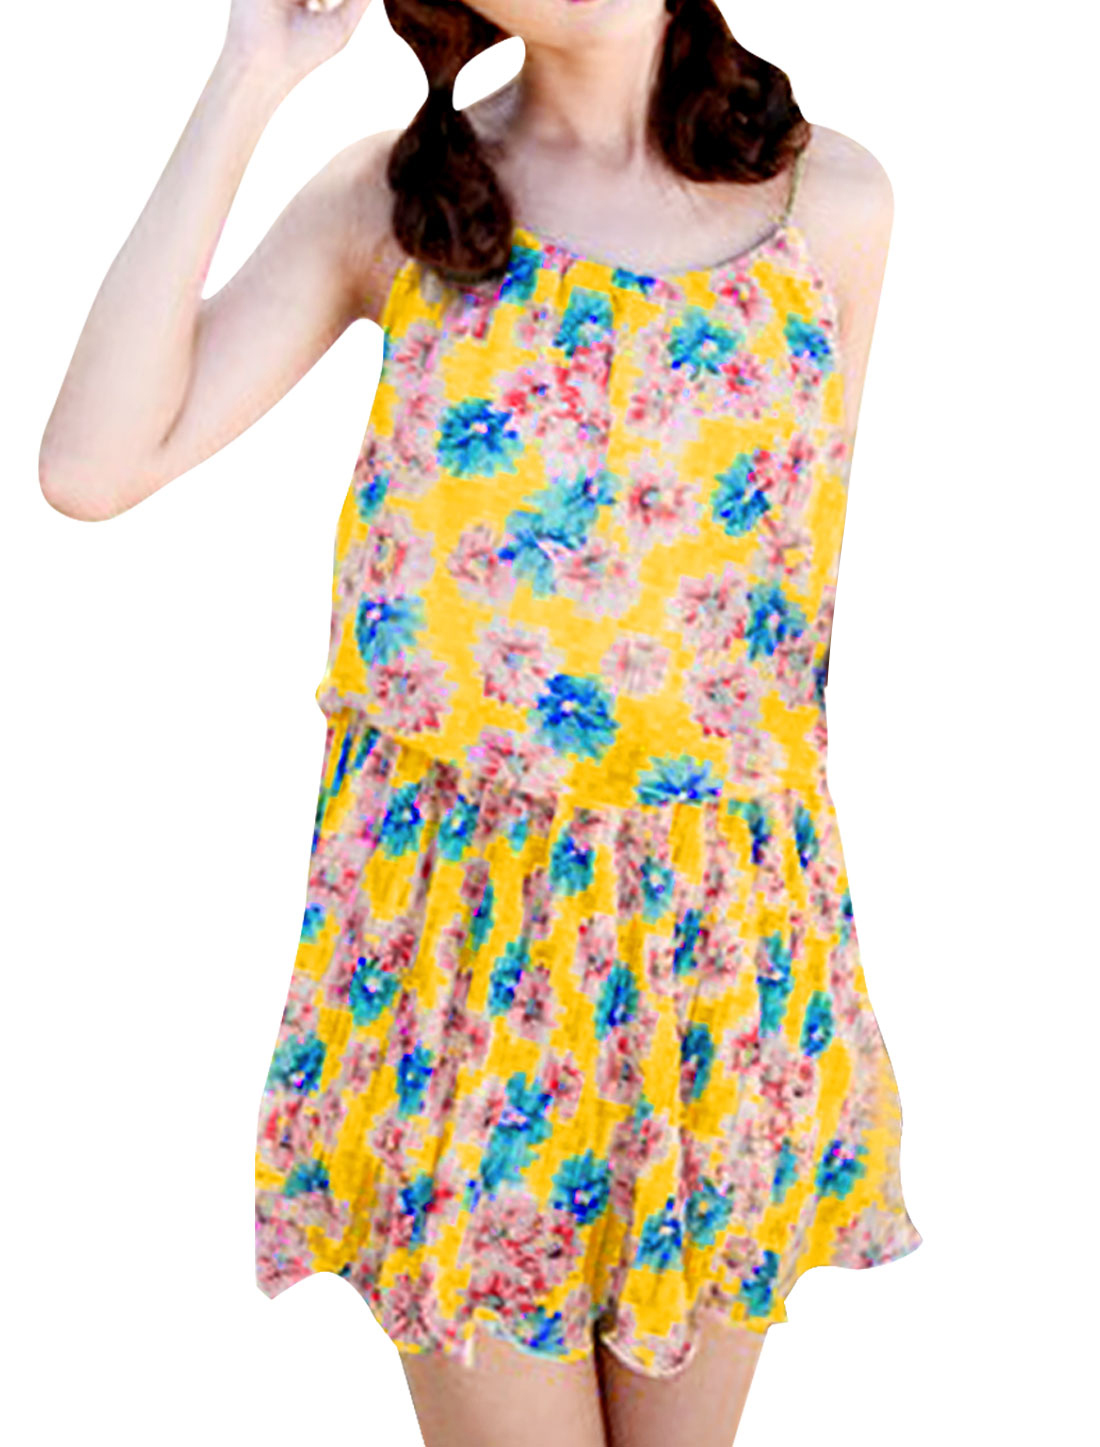 Lady Yellow Strap Spaghetti Pullover Flower Design Casual Dress XS